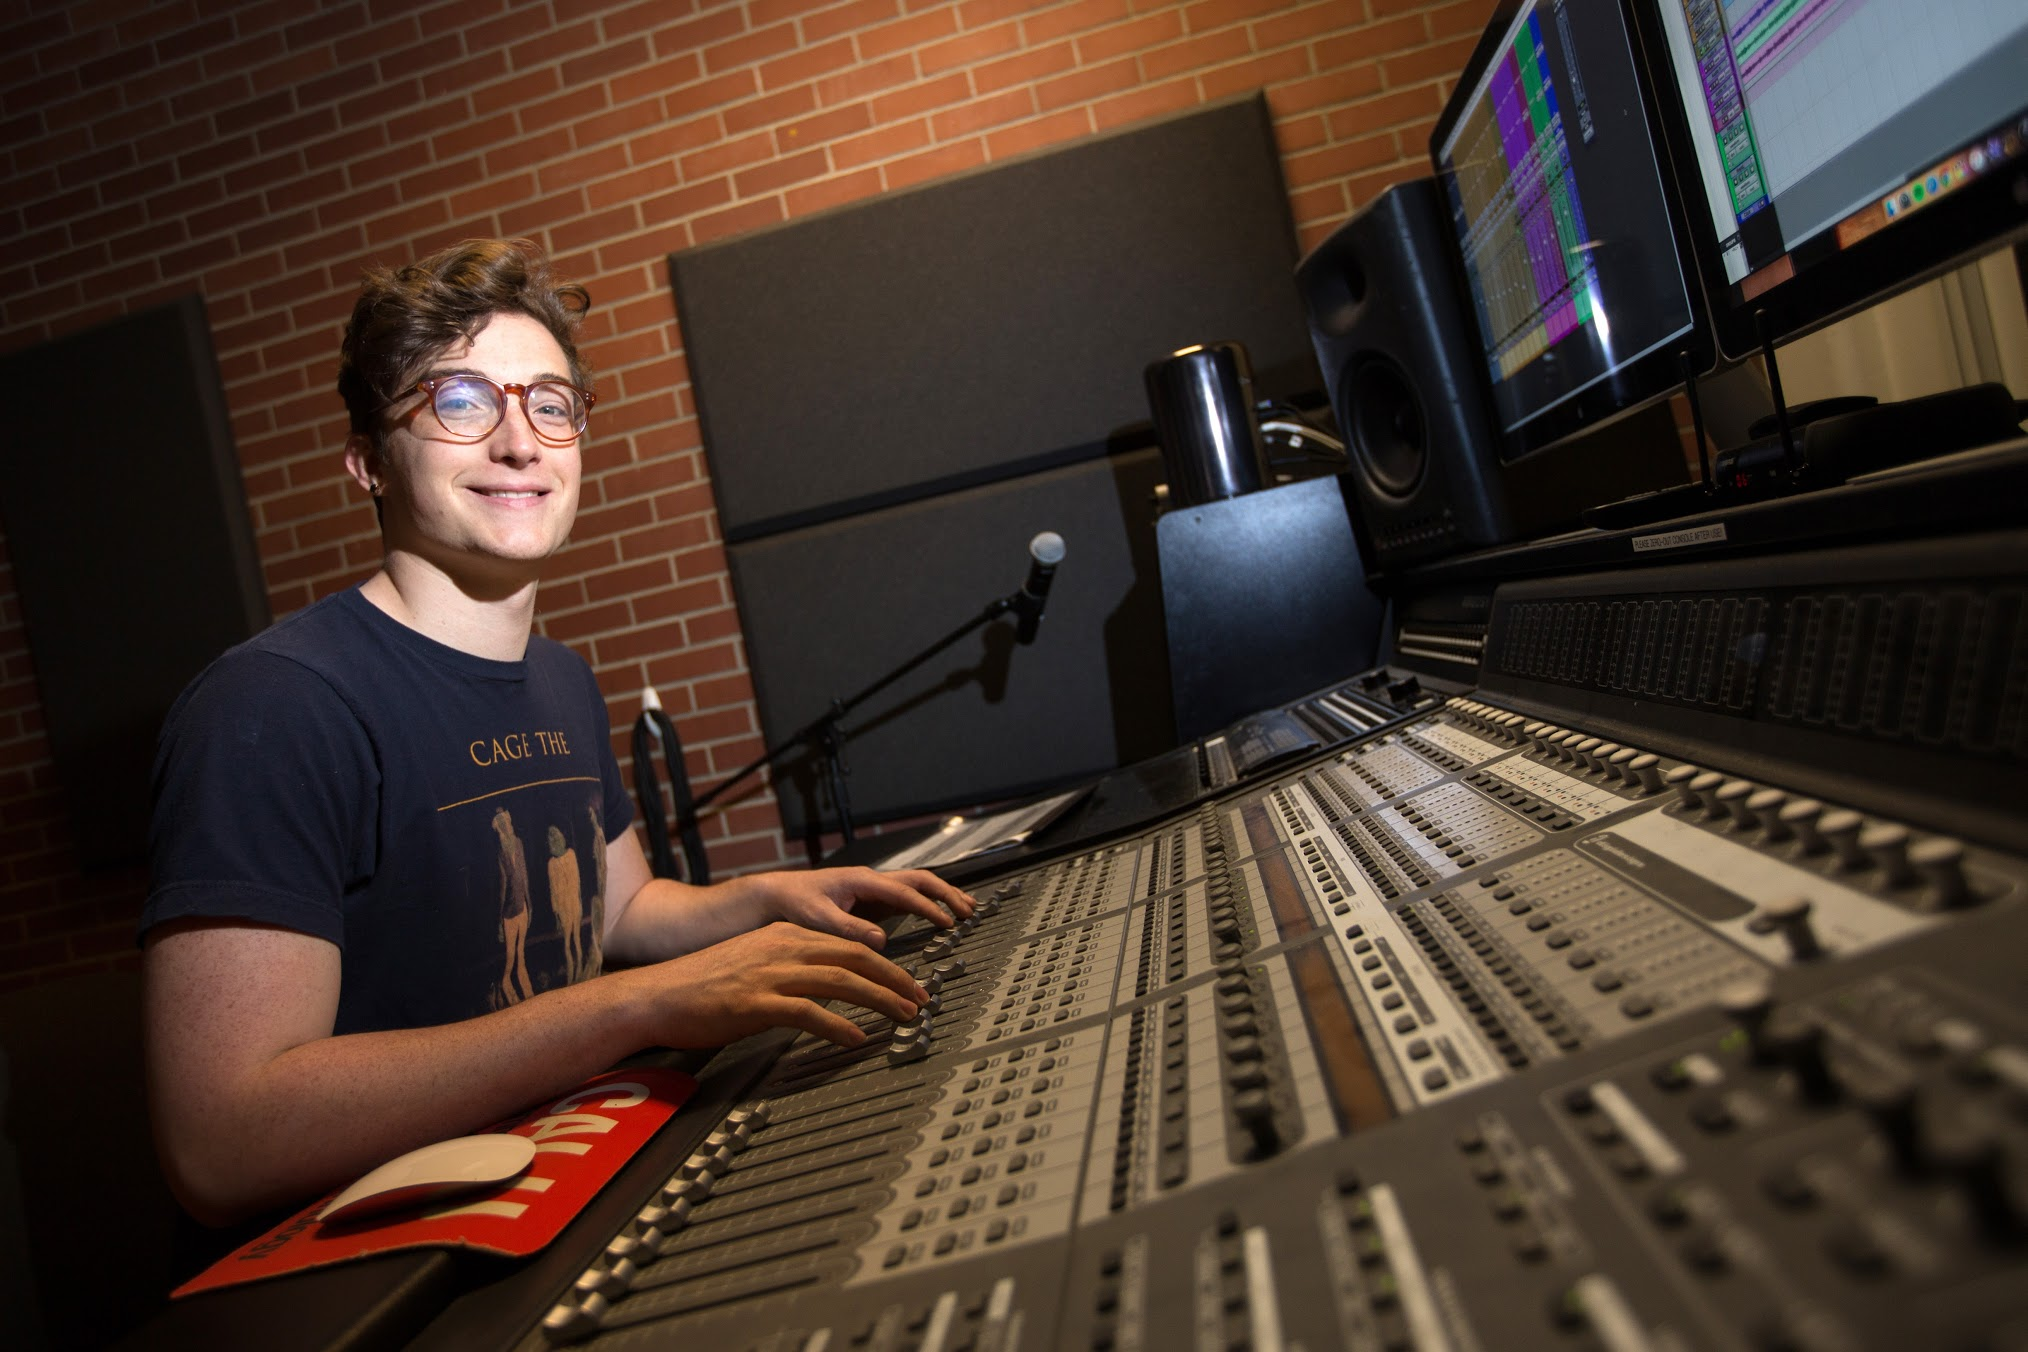 A commercial music student prepares for a career.